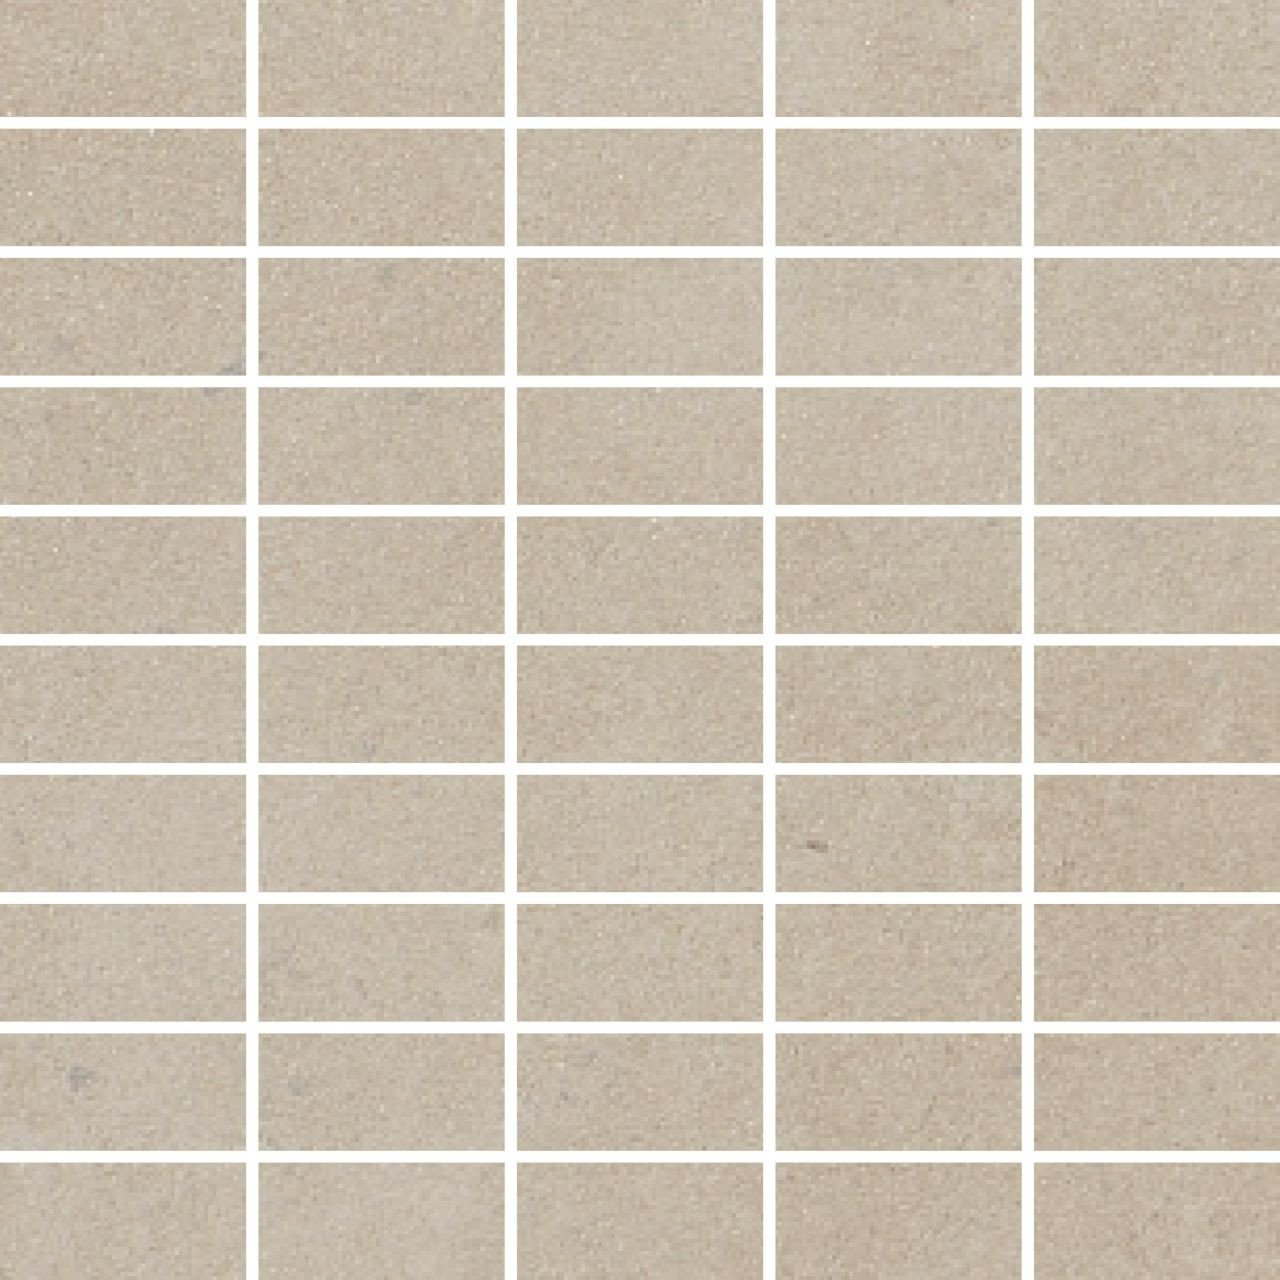 RAK Surface Sand Matt 30cm x 30cm Sheet 2.7cm x 5.8cm Bricks Porcelain Mosaic Tile - AM-GZSUR-SN.RT3/6